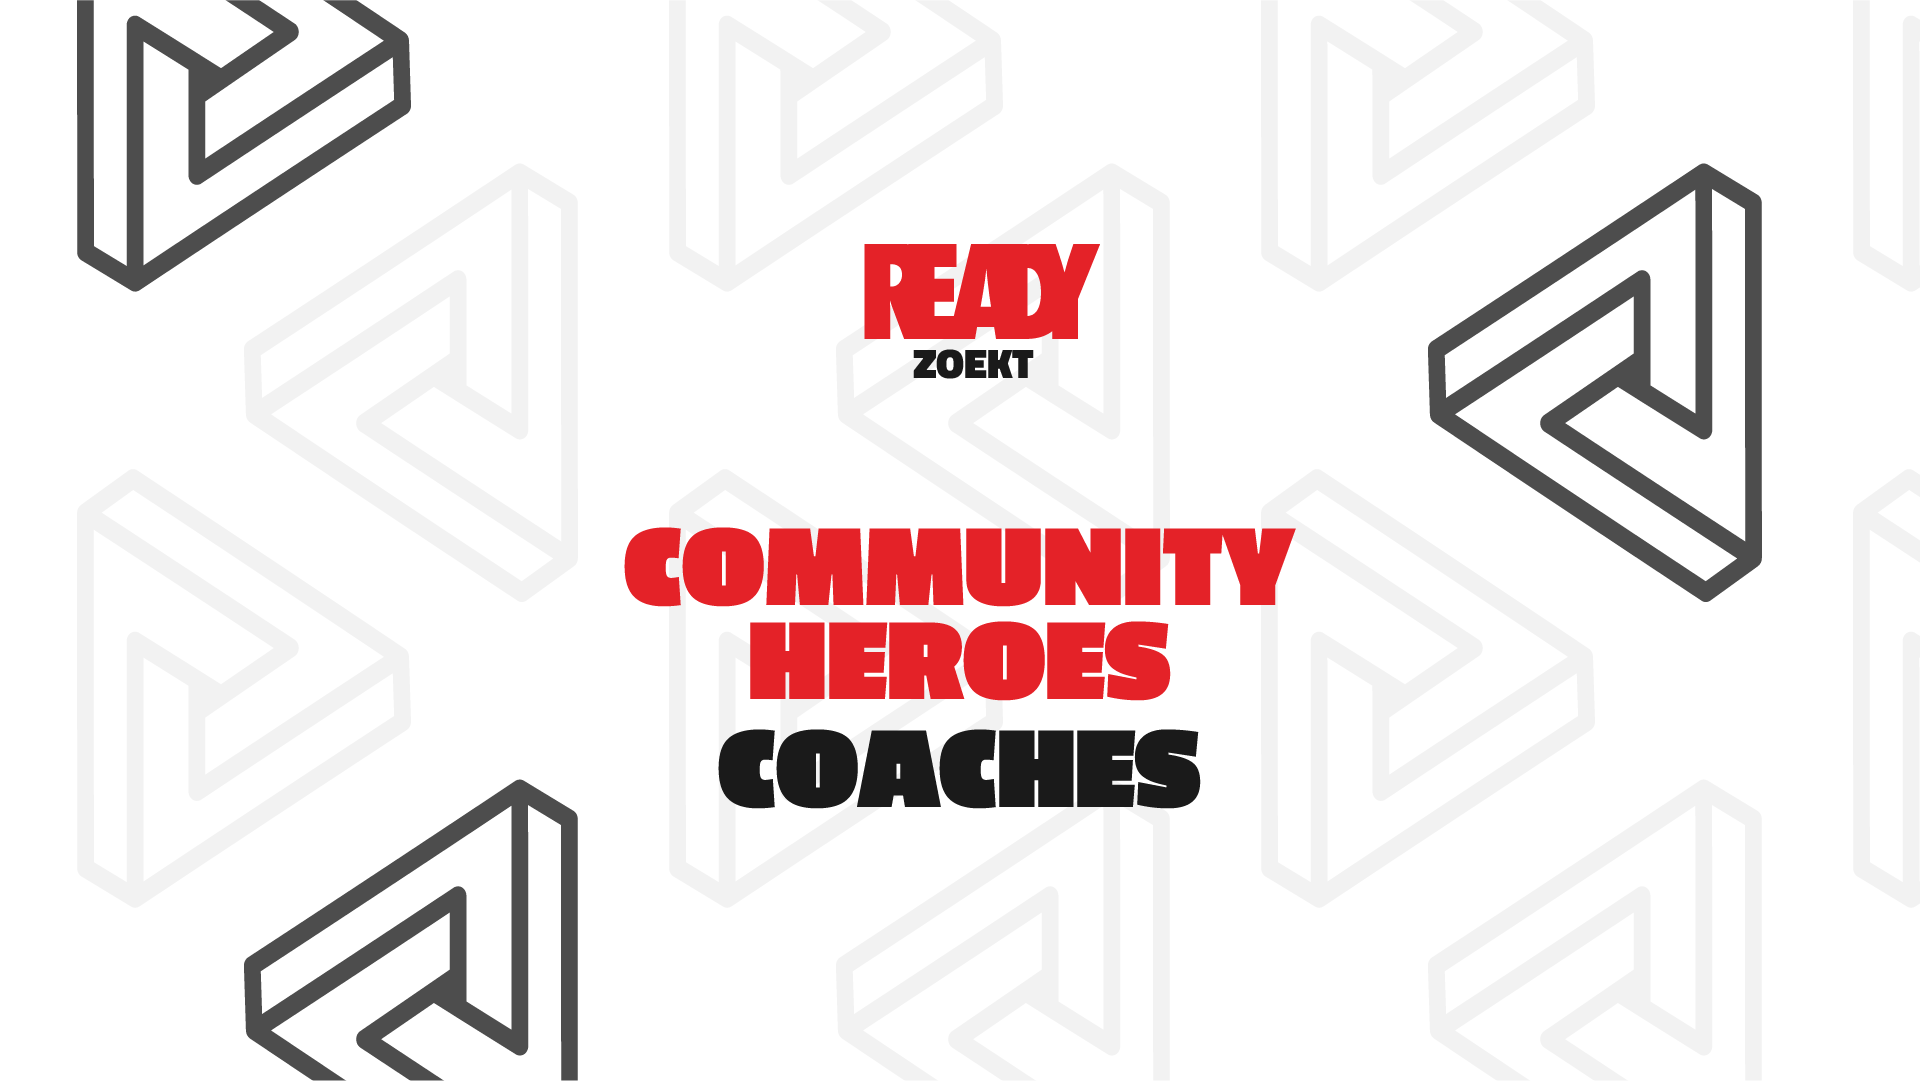 Werving vacature Ready Zoekt Community heroes